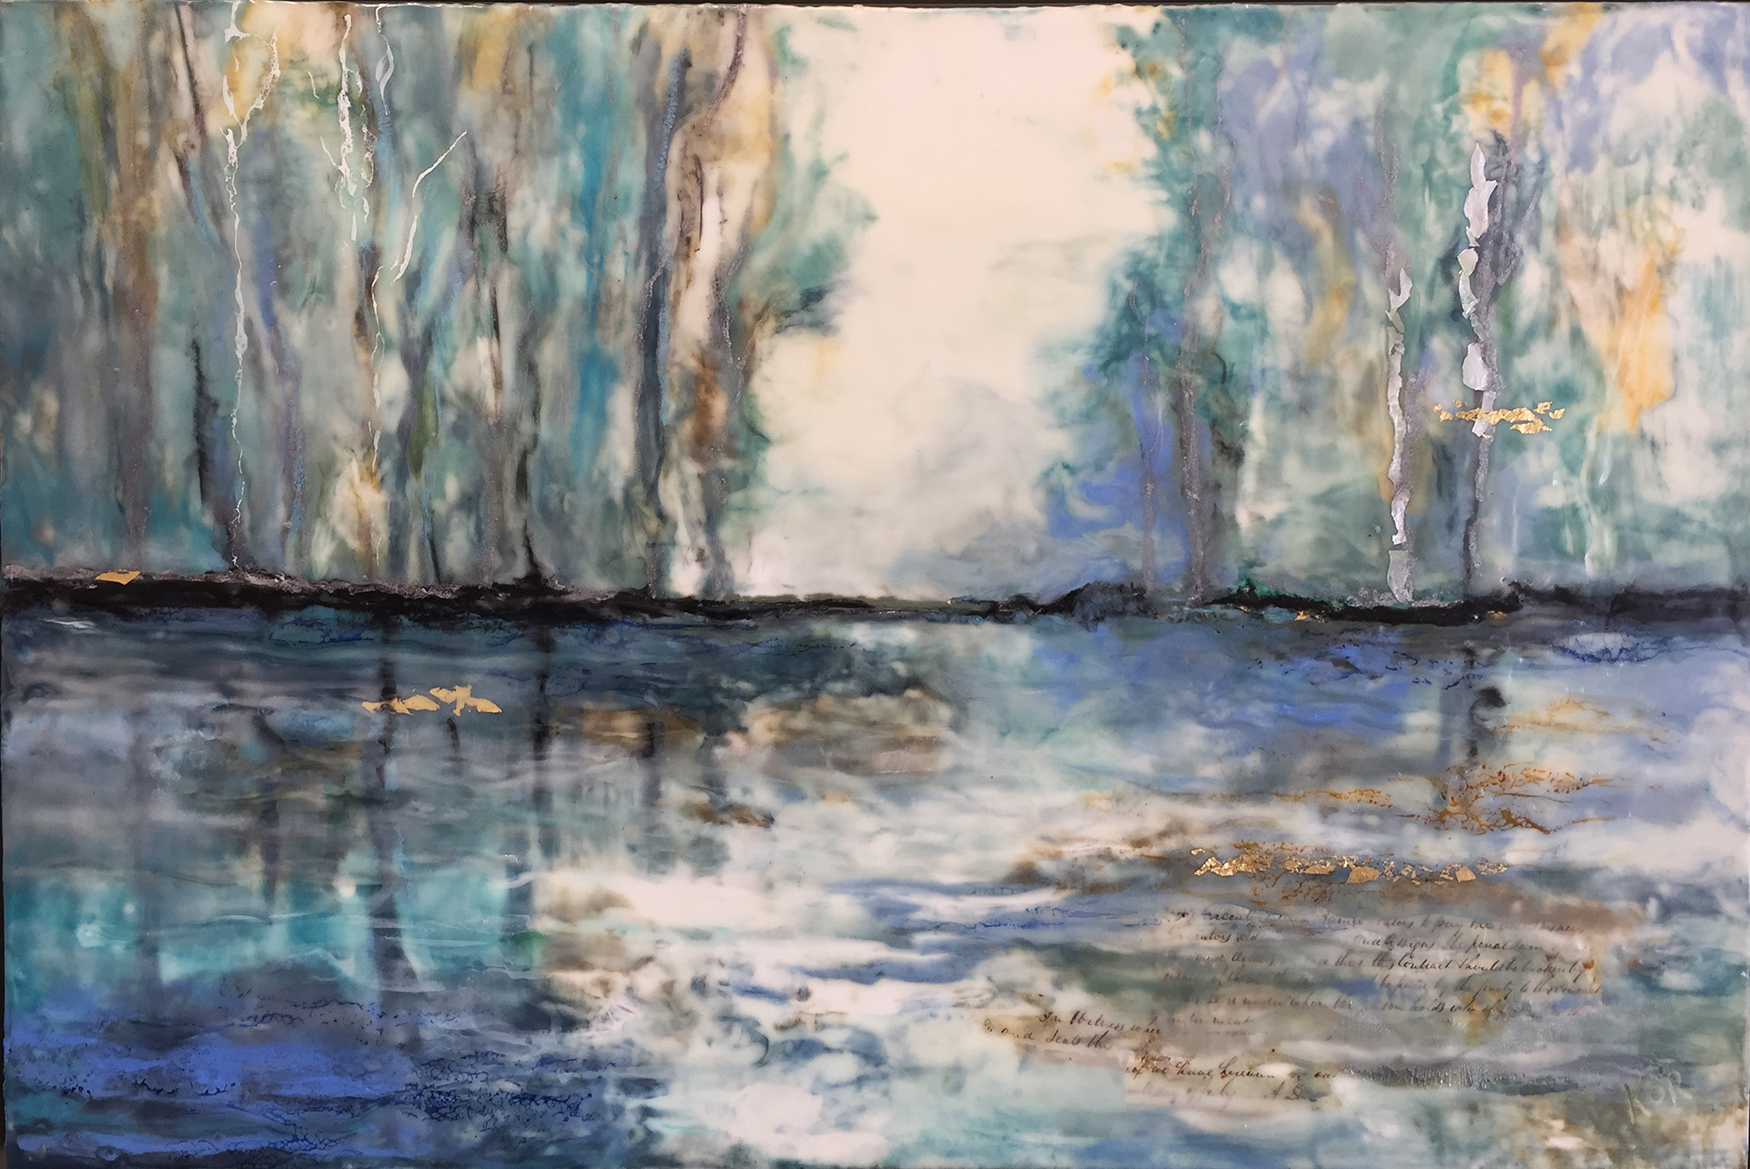 """Kennebunk Marsh""                                                                                                                          Encaustic on Birch Panel                                                                                                                   24 x 36   ($3500.00)"